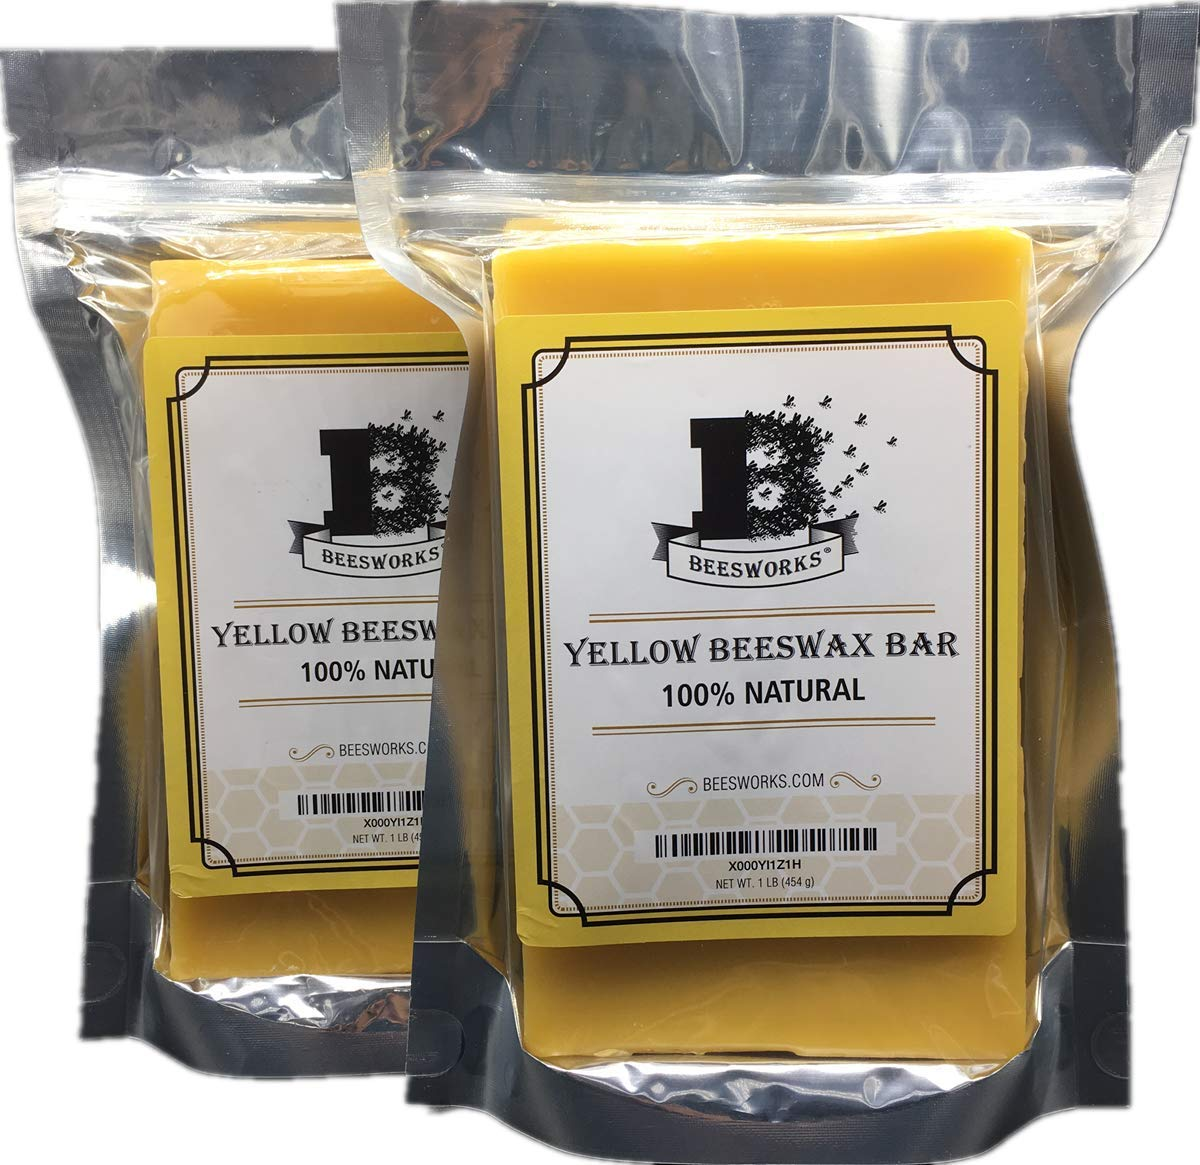 Beesworks-2 Pack-Yellow Beeswax Bars 1LB - (2 LBS Total) - 100% Pure, Cosmetic Grade...